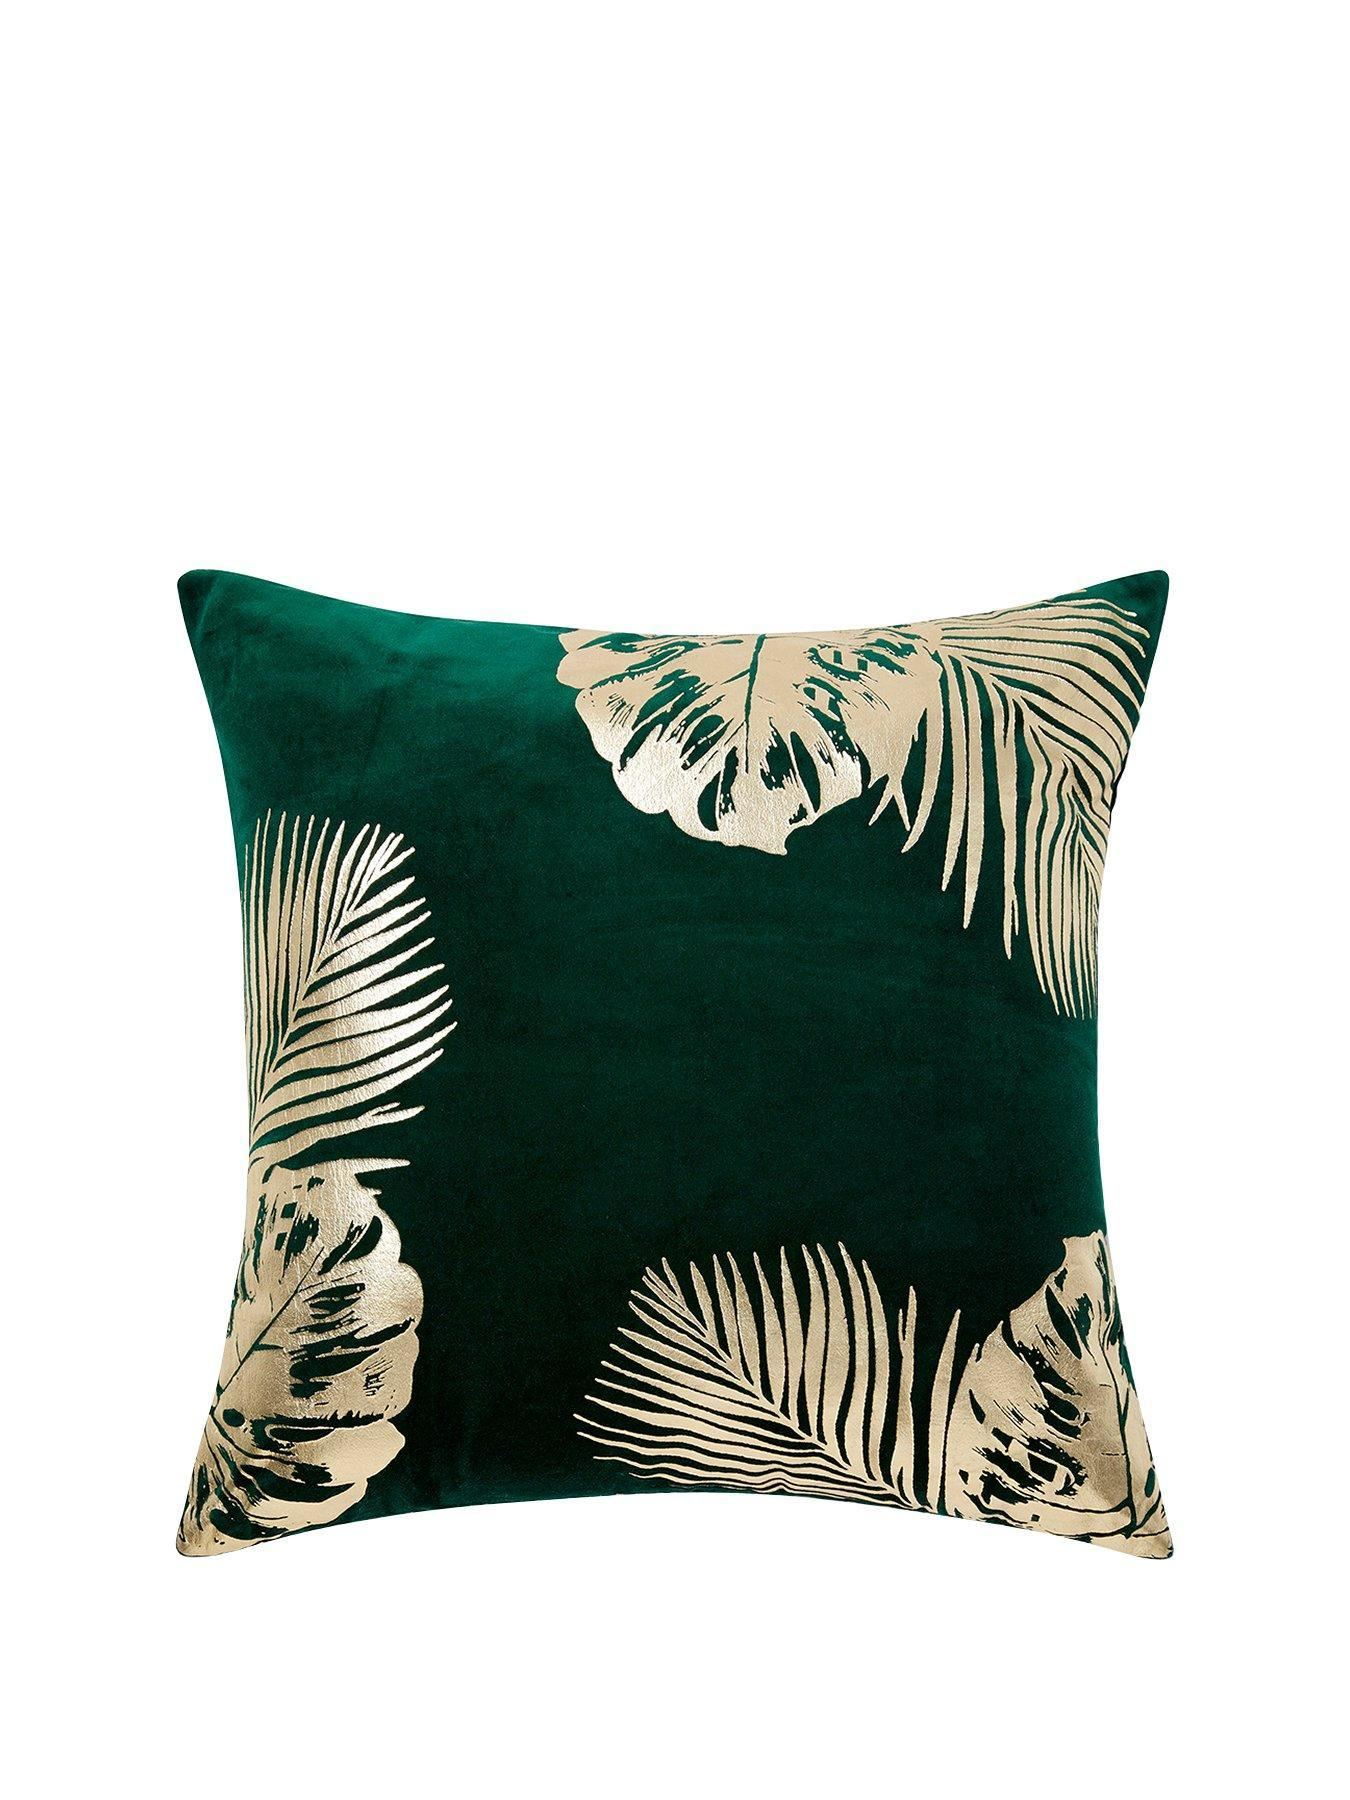 Green and gold leaf print cushion home accessories inspiration| Today we're talking inspiration for adding green to your living room. Green is a really versatile colour to decorate your home with. But, which colours and tones work well? What kind of accessories work with green? This post gives you ideas for pulling together an elegant green colour palette and pieces for your home. Read more: kittyandb.com #greenlivingroom #greenaccessories #greencolorpalette #interiordecoratinginspiration #greenaesthetic #greensofa #cushion #greenandgold